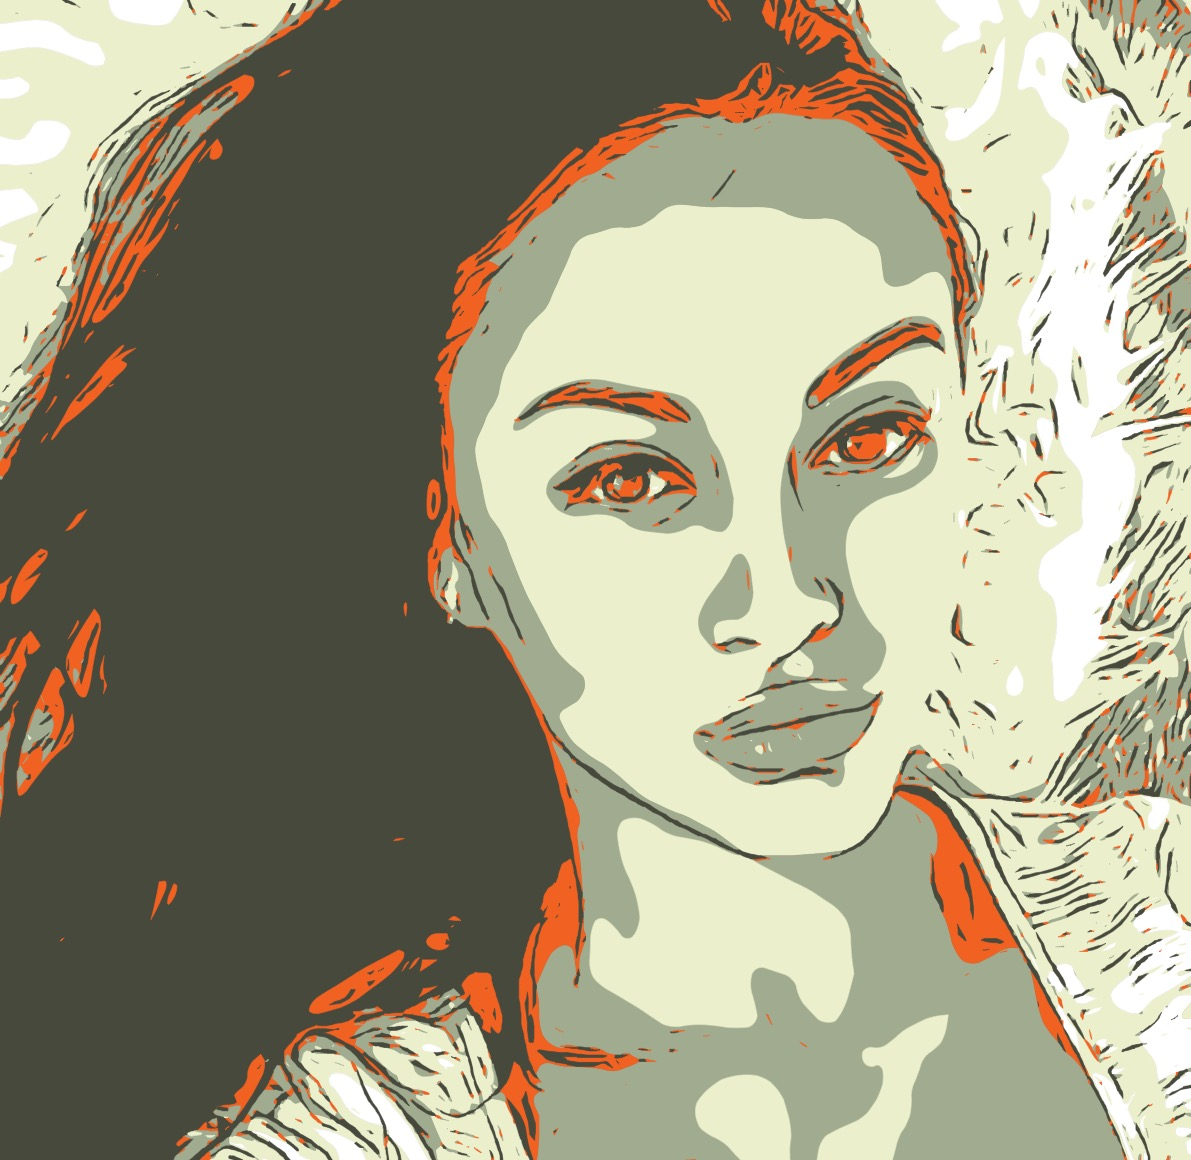 convert your photo in this Cartoon style